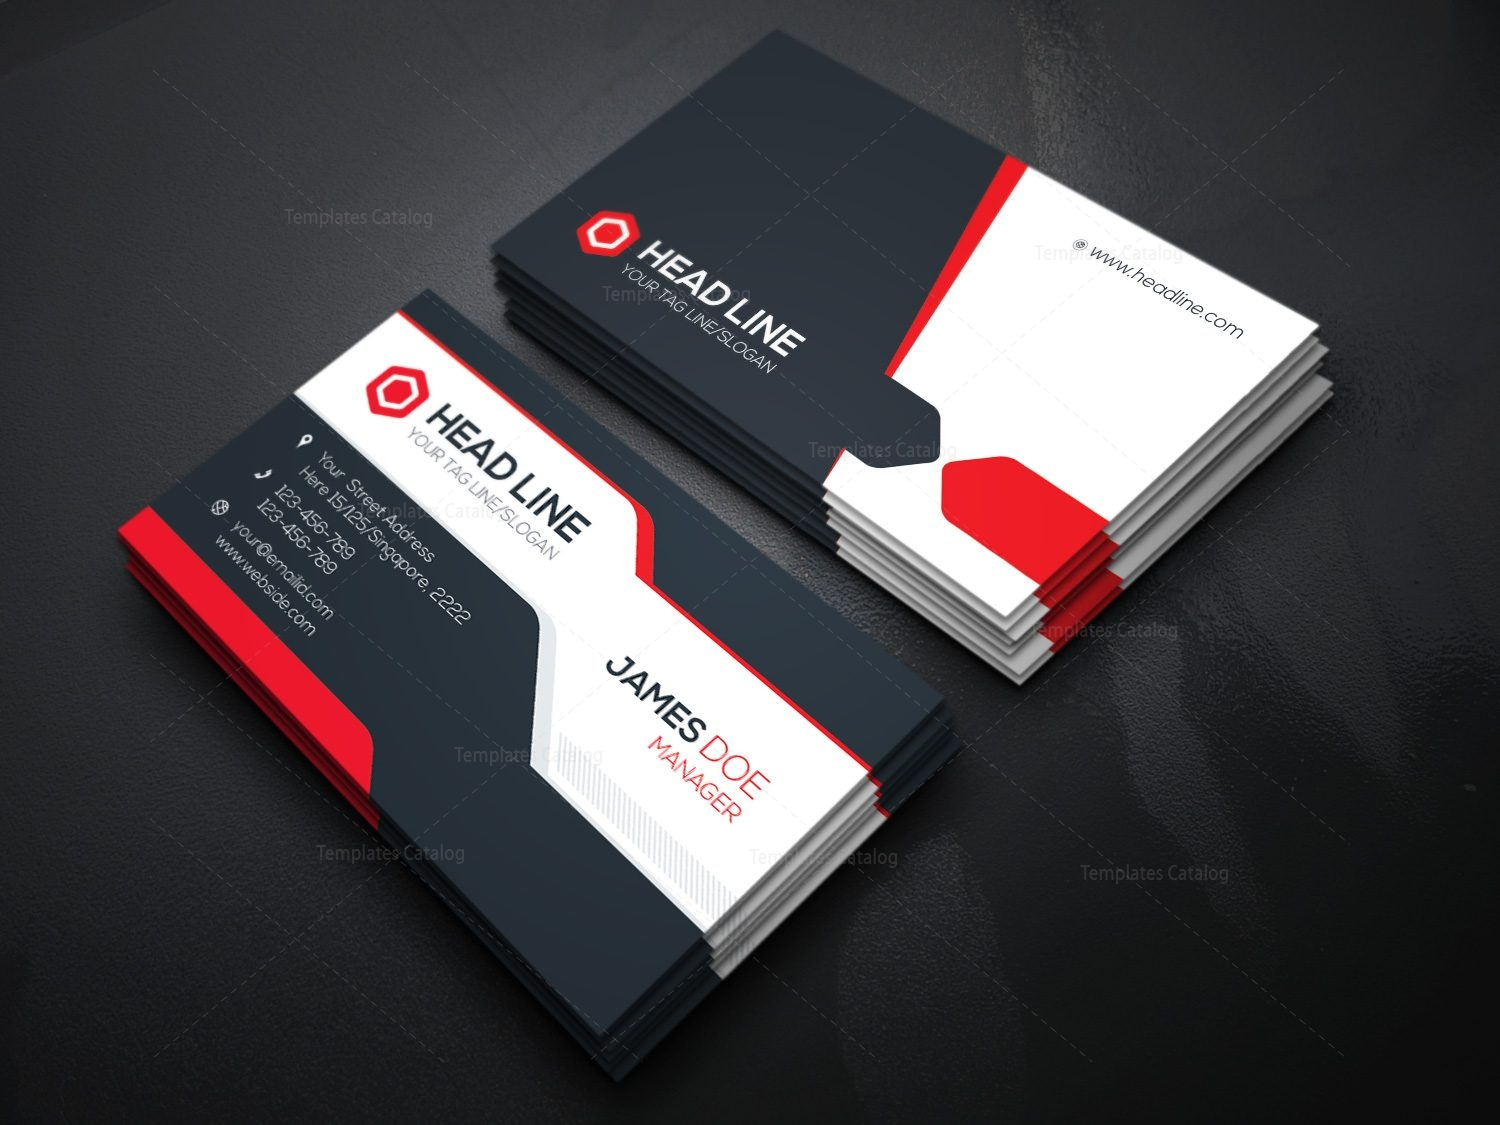 Stylish Visiting Card Template 000085   Template Catalog Stylish Visiting Card Template 2